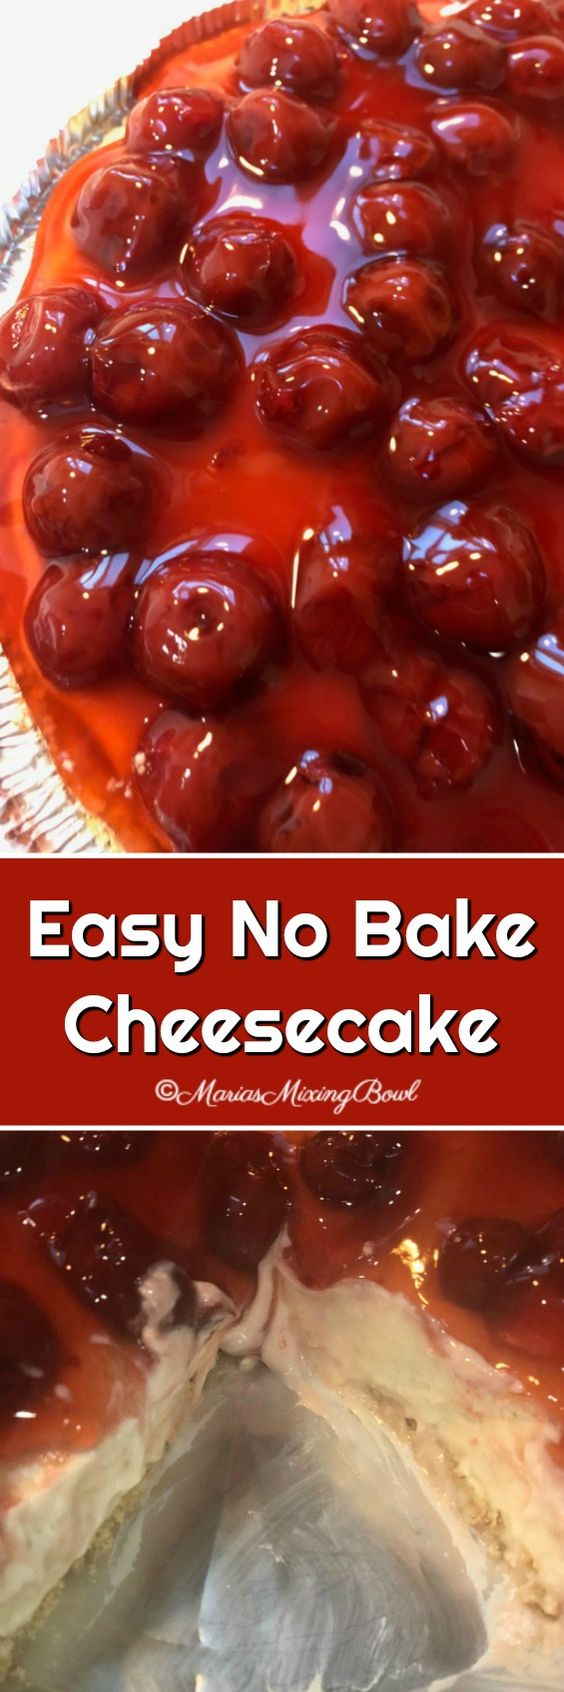 Easy No Bake Cheesecake is a delicious and simple cheesecake that can be made in just a few minutes. One of our go to recipes when time is short and we need a quickie dessert.